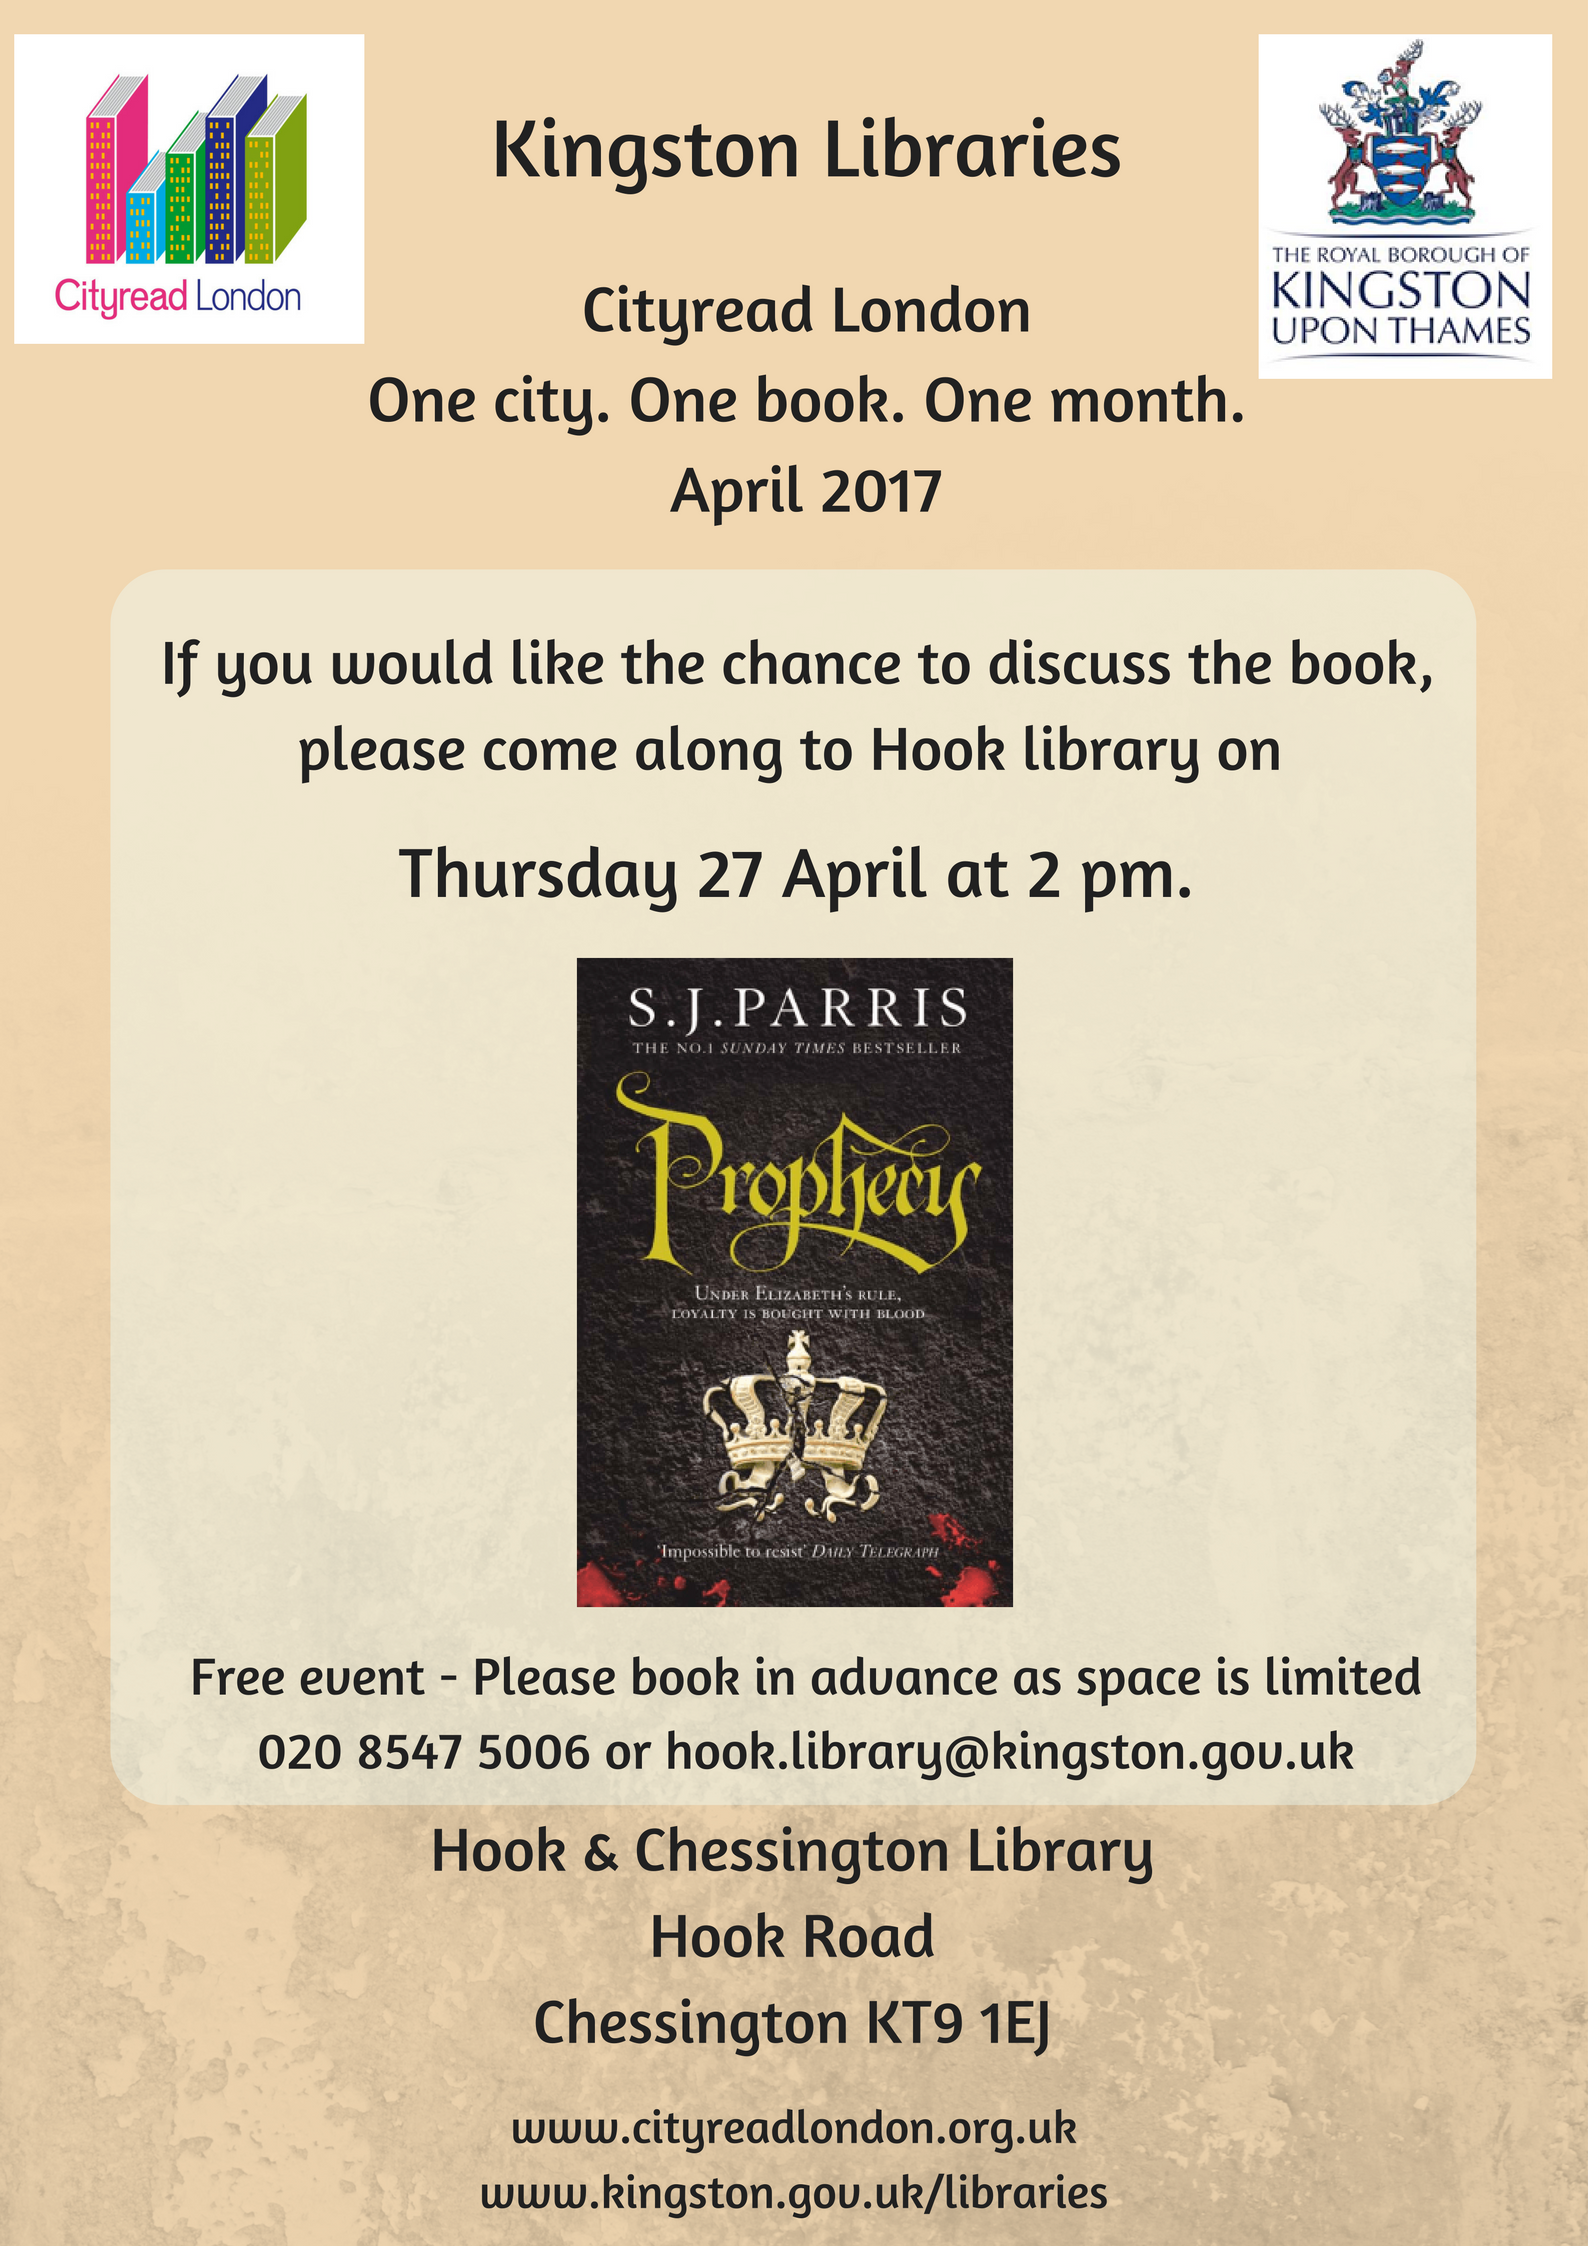 Book Group discussion : Prophecy by S.J. Parris